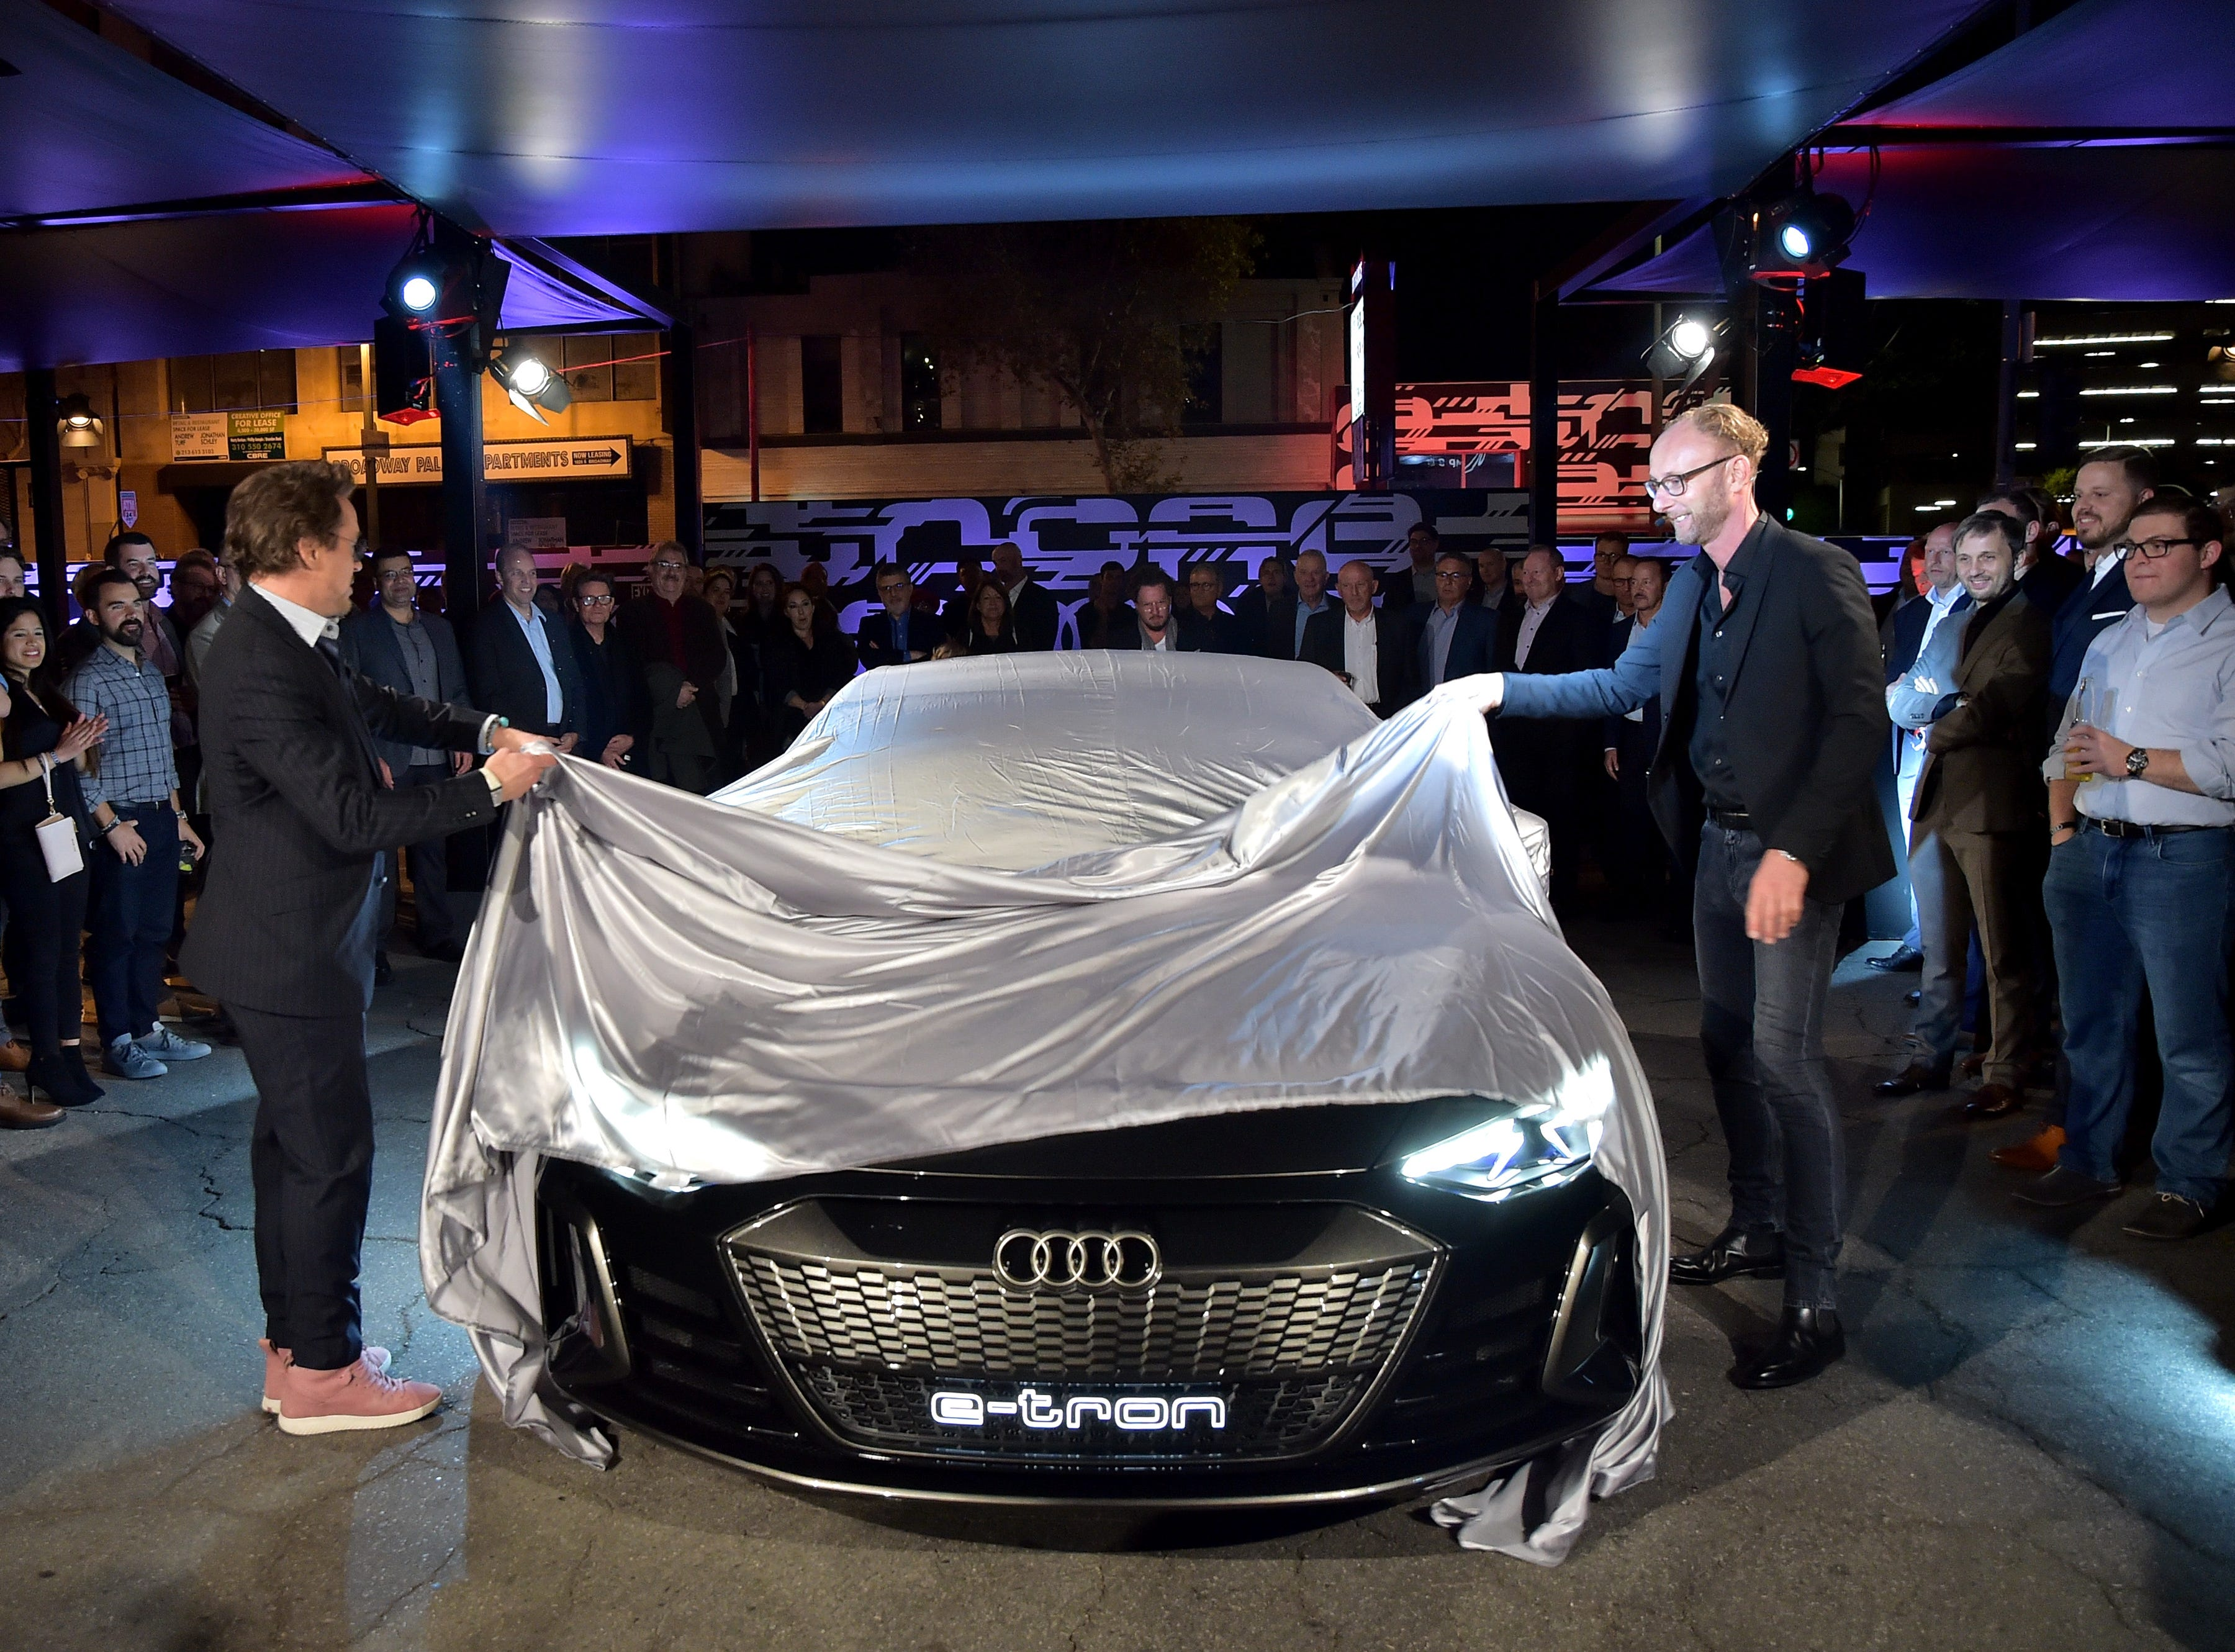 Robert Downey Jr. (L) and Head of Design of Audi AG, Marc Lichte attend the global reveal of the Audi e-tron GT concept in Los Angeles on Monday, November 26th, 2018.